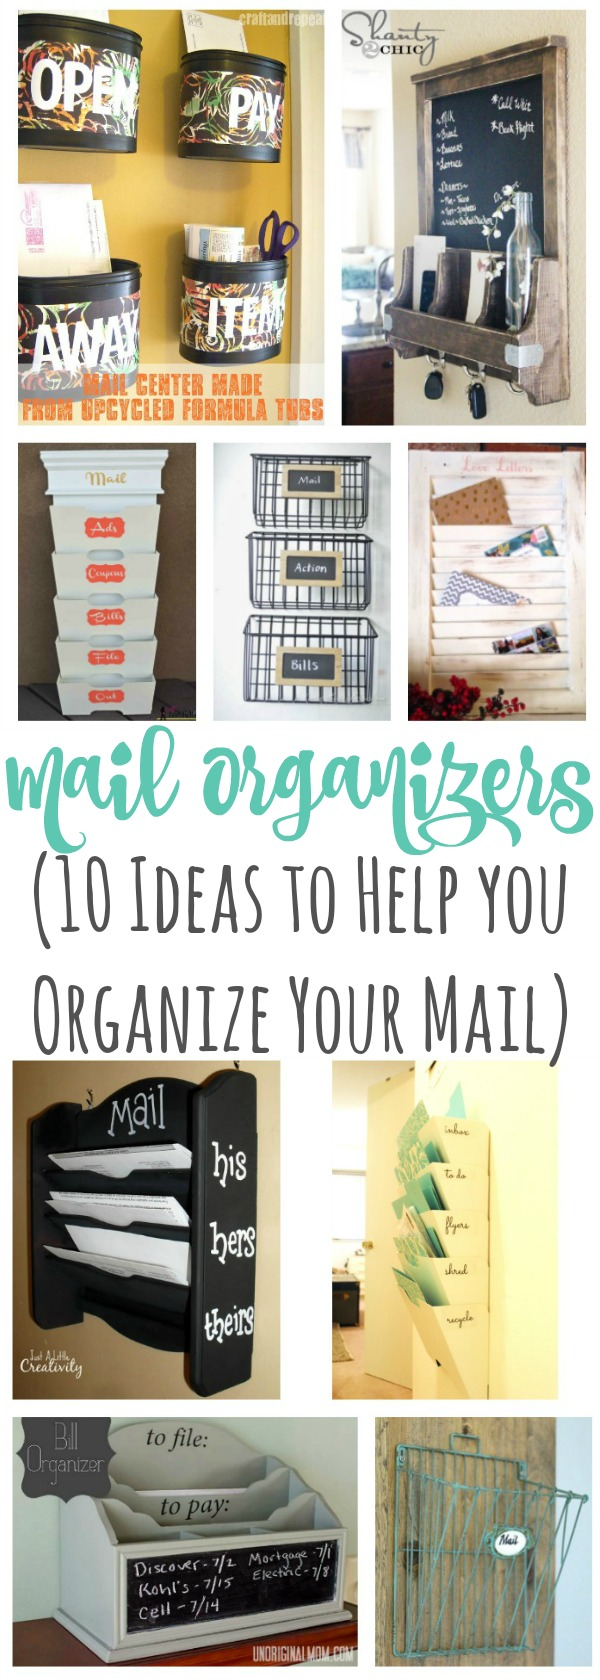 Get rid of the mail clutter with these ideas on how to creatively and easily organize your mail.